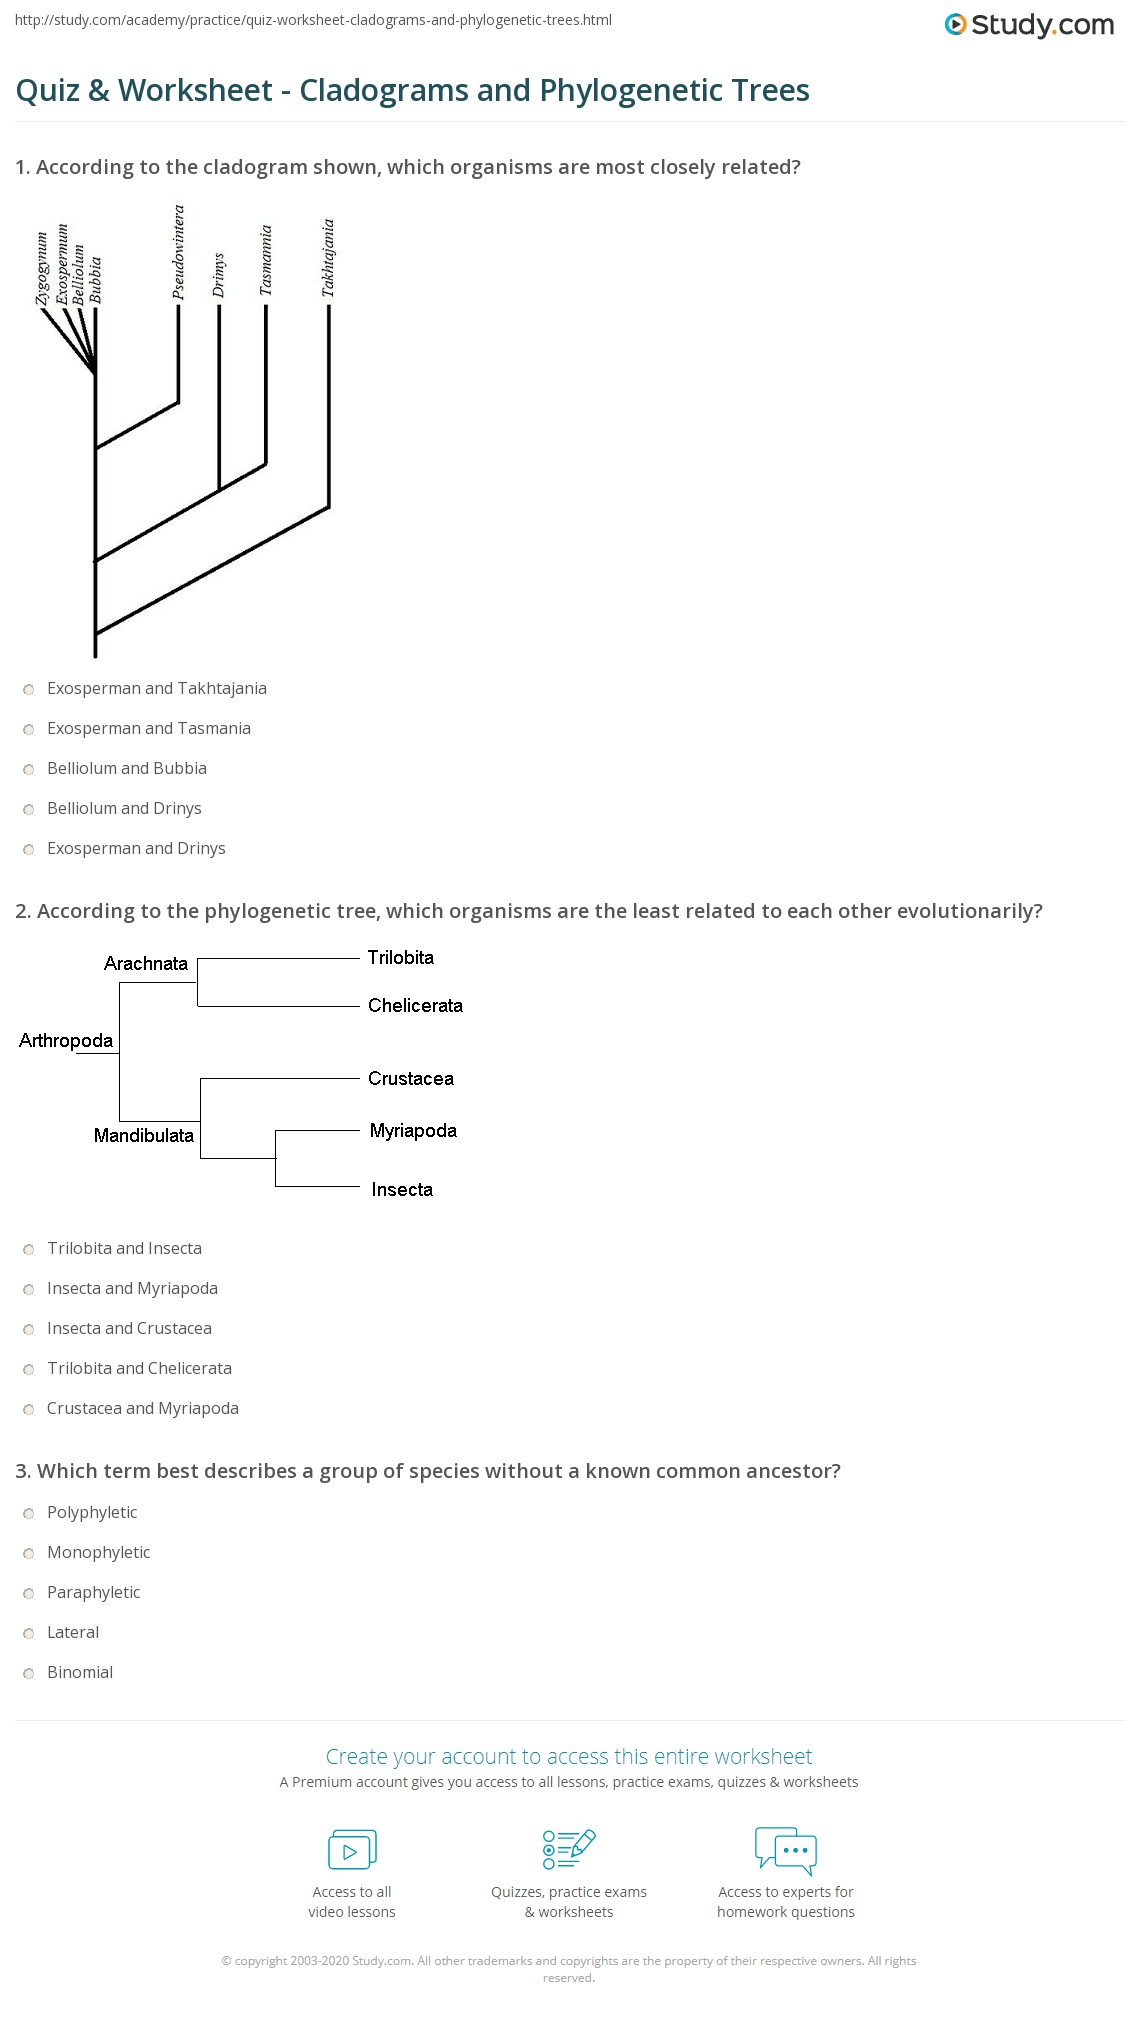 Quiz  Worksheet  Cladograms and Phylogenetic Trees  Study.com